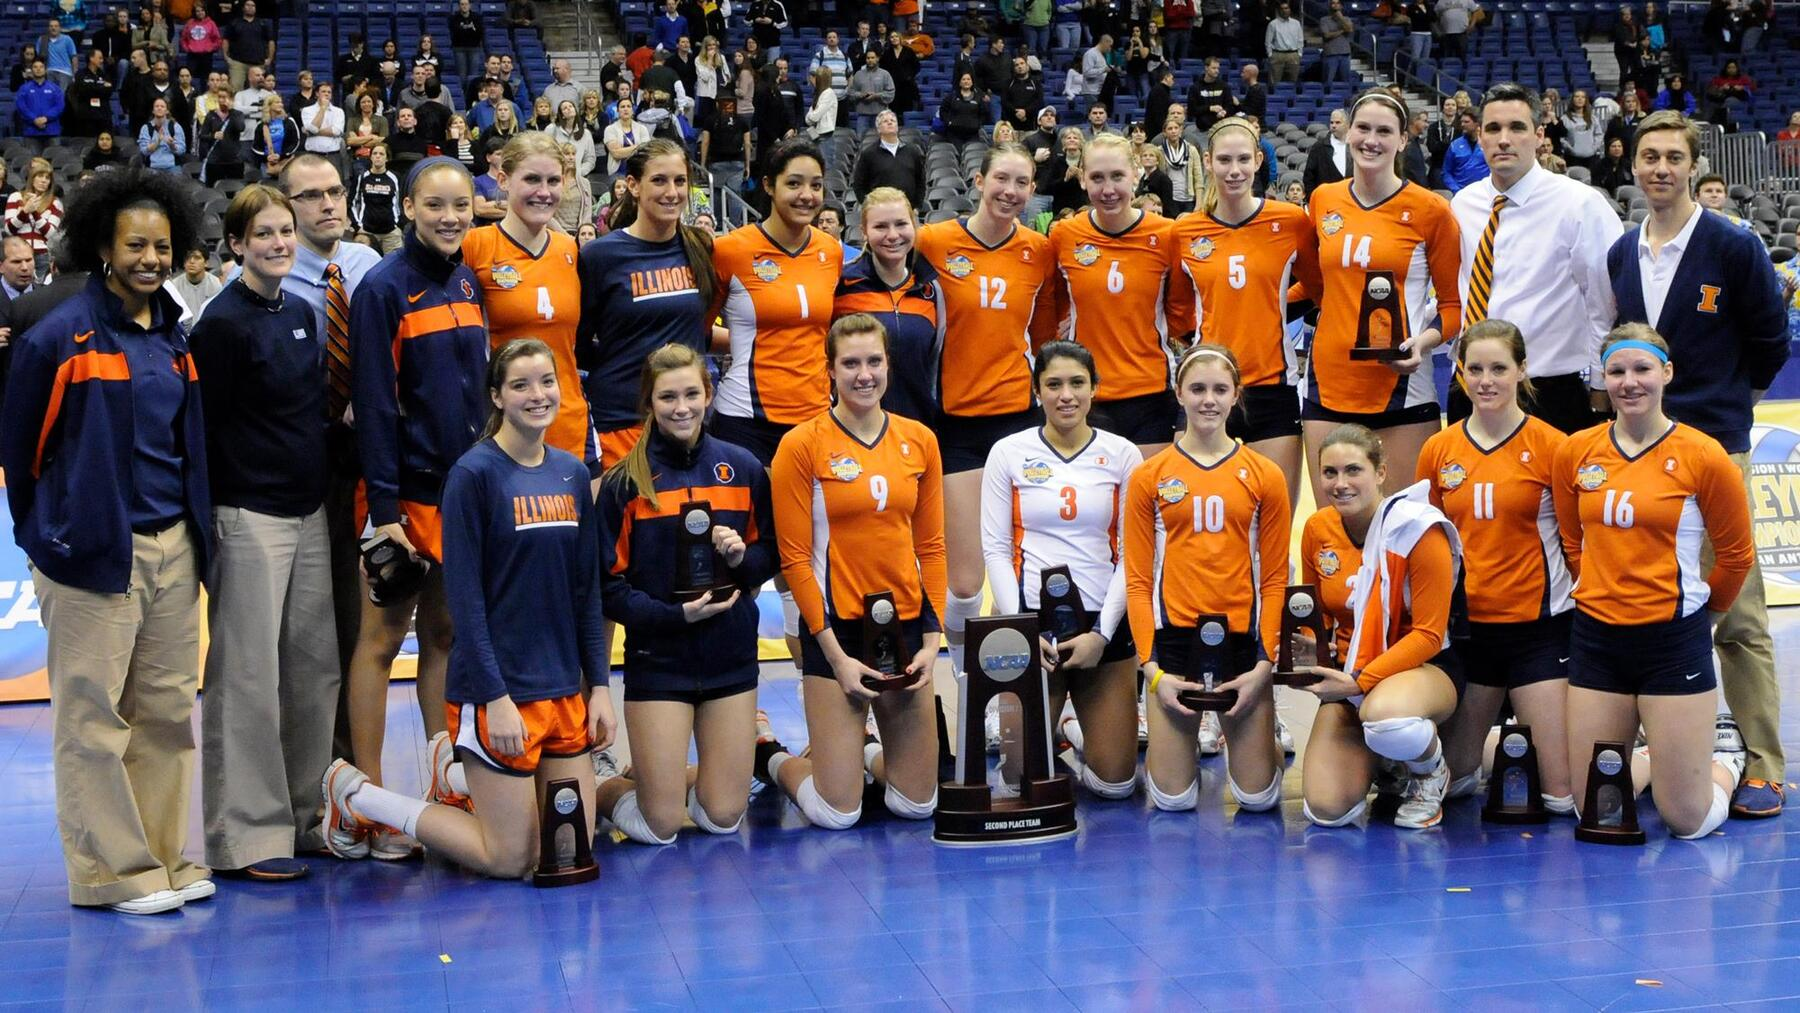 2011 Illini Volleyball team poses with National Runner Up trophies